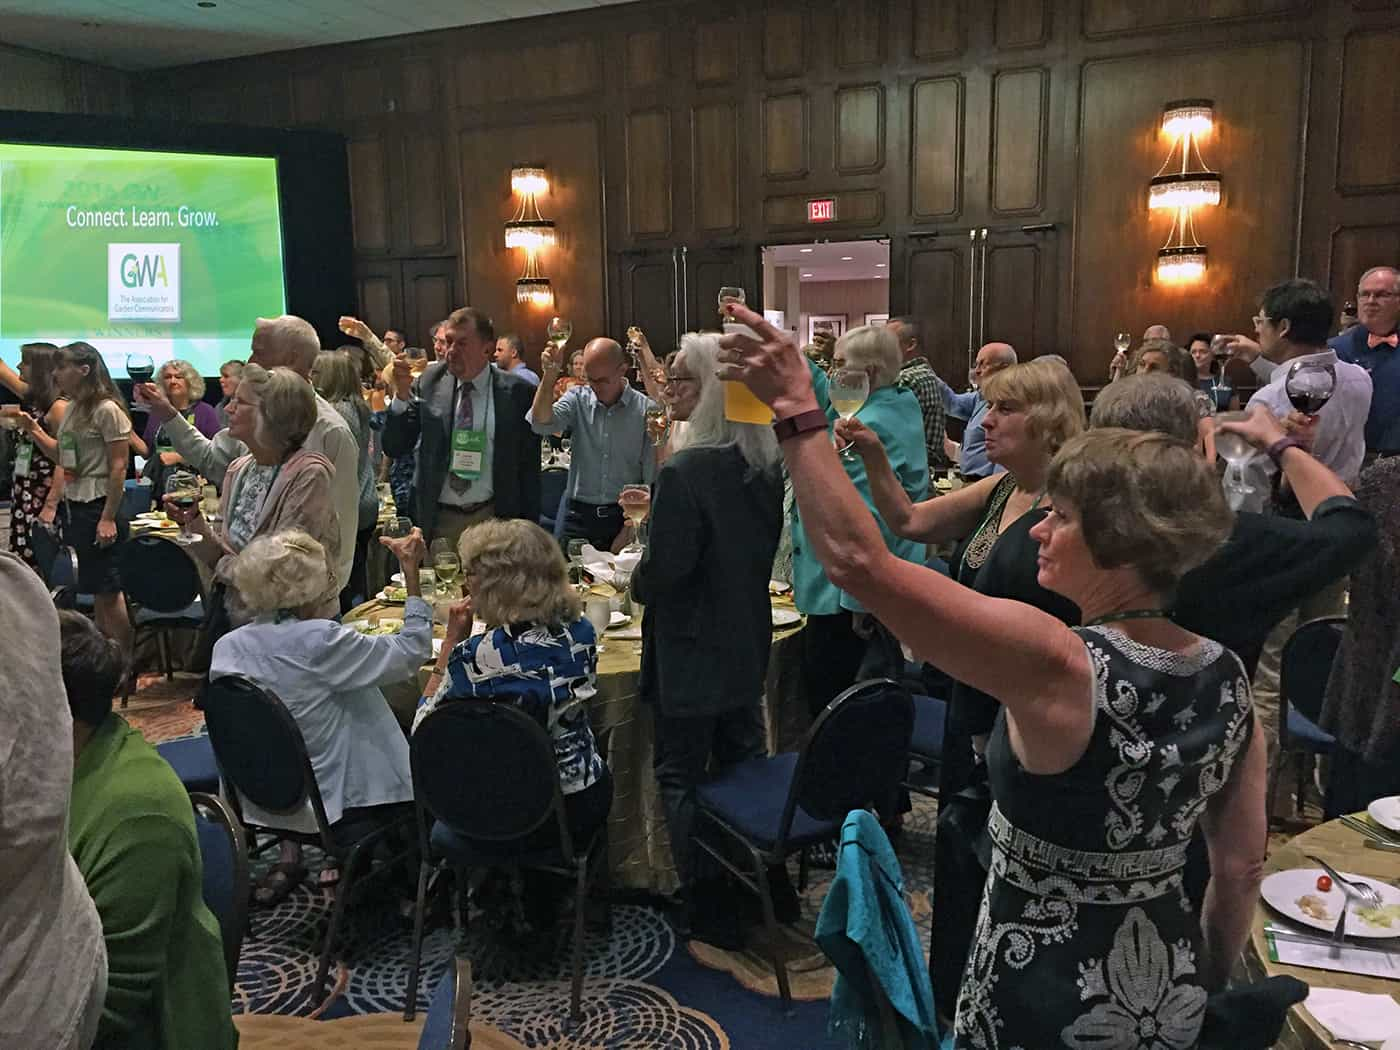 At the GWA meeting we raise our glass to fellow garden communicators, those who supply plants and products that help create beautiful gardens, and to everyone who appreciates horticulture.